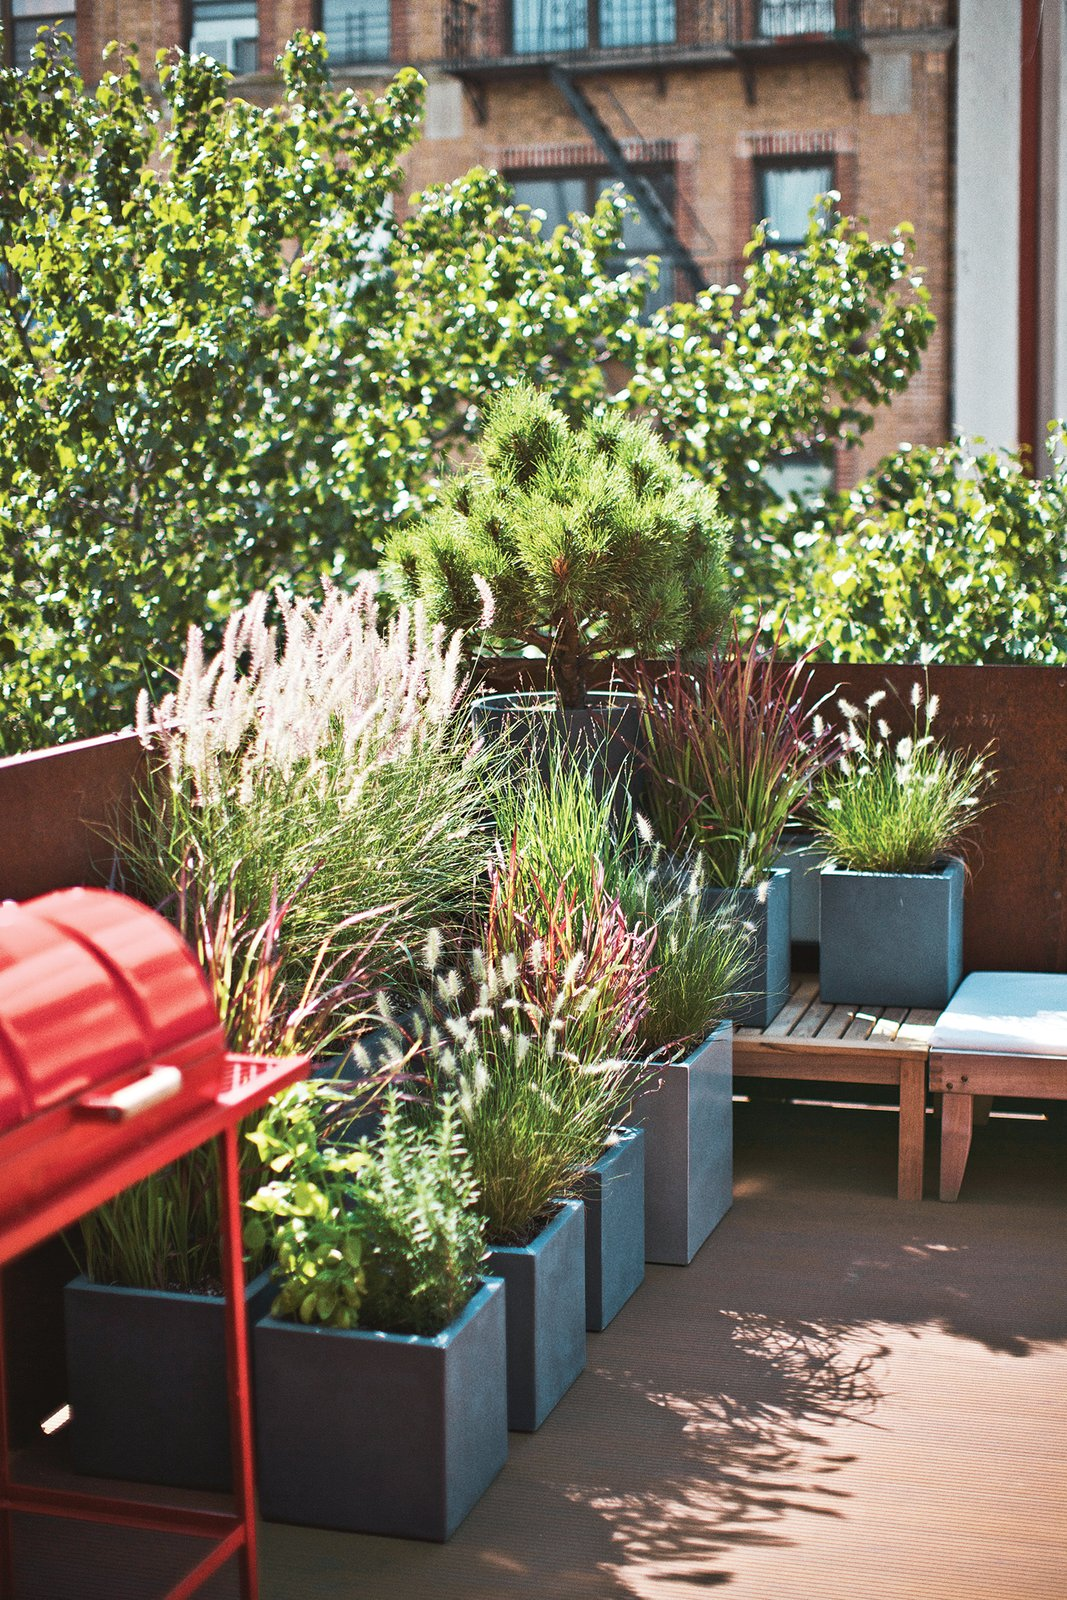 Outdoor, Planters Patio, Porch, Deck, and Trees A barbecue from Alabama Joe's is much used in the warmer months.  Photo 4 of 13 in Get Your Tongs Ready For the Long Weekend With 13 Outdoor Spaces Made For Grilling from A Brooklyn Couple Rehabilitate a 19th-Century Duplex